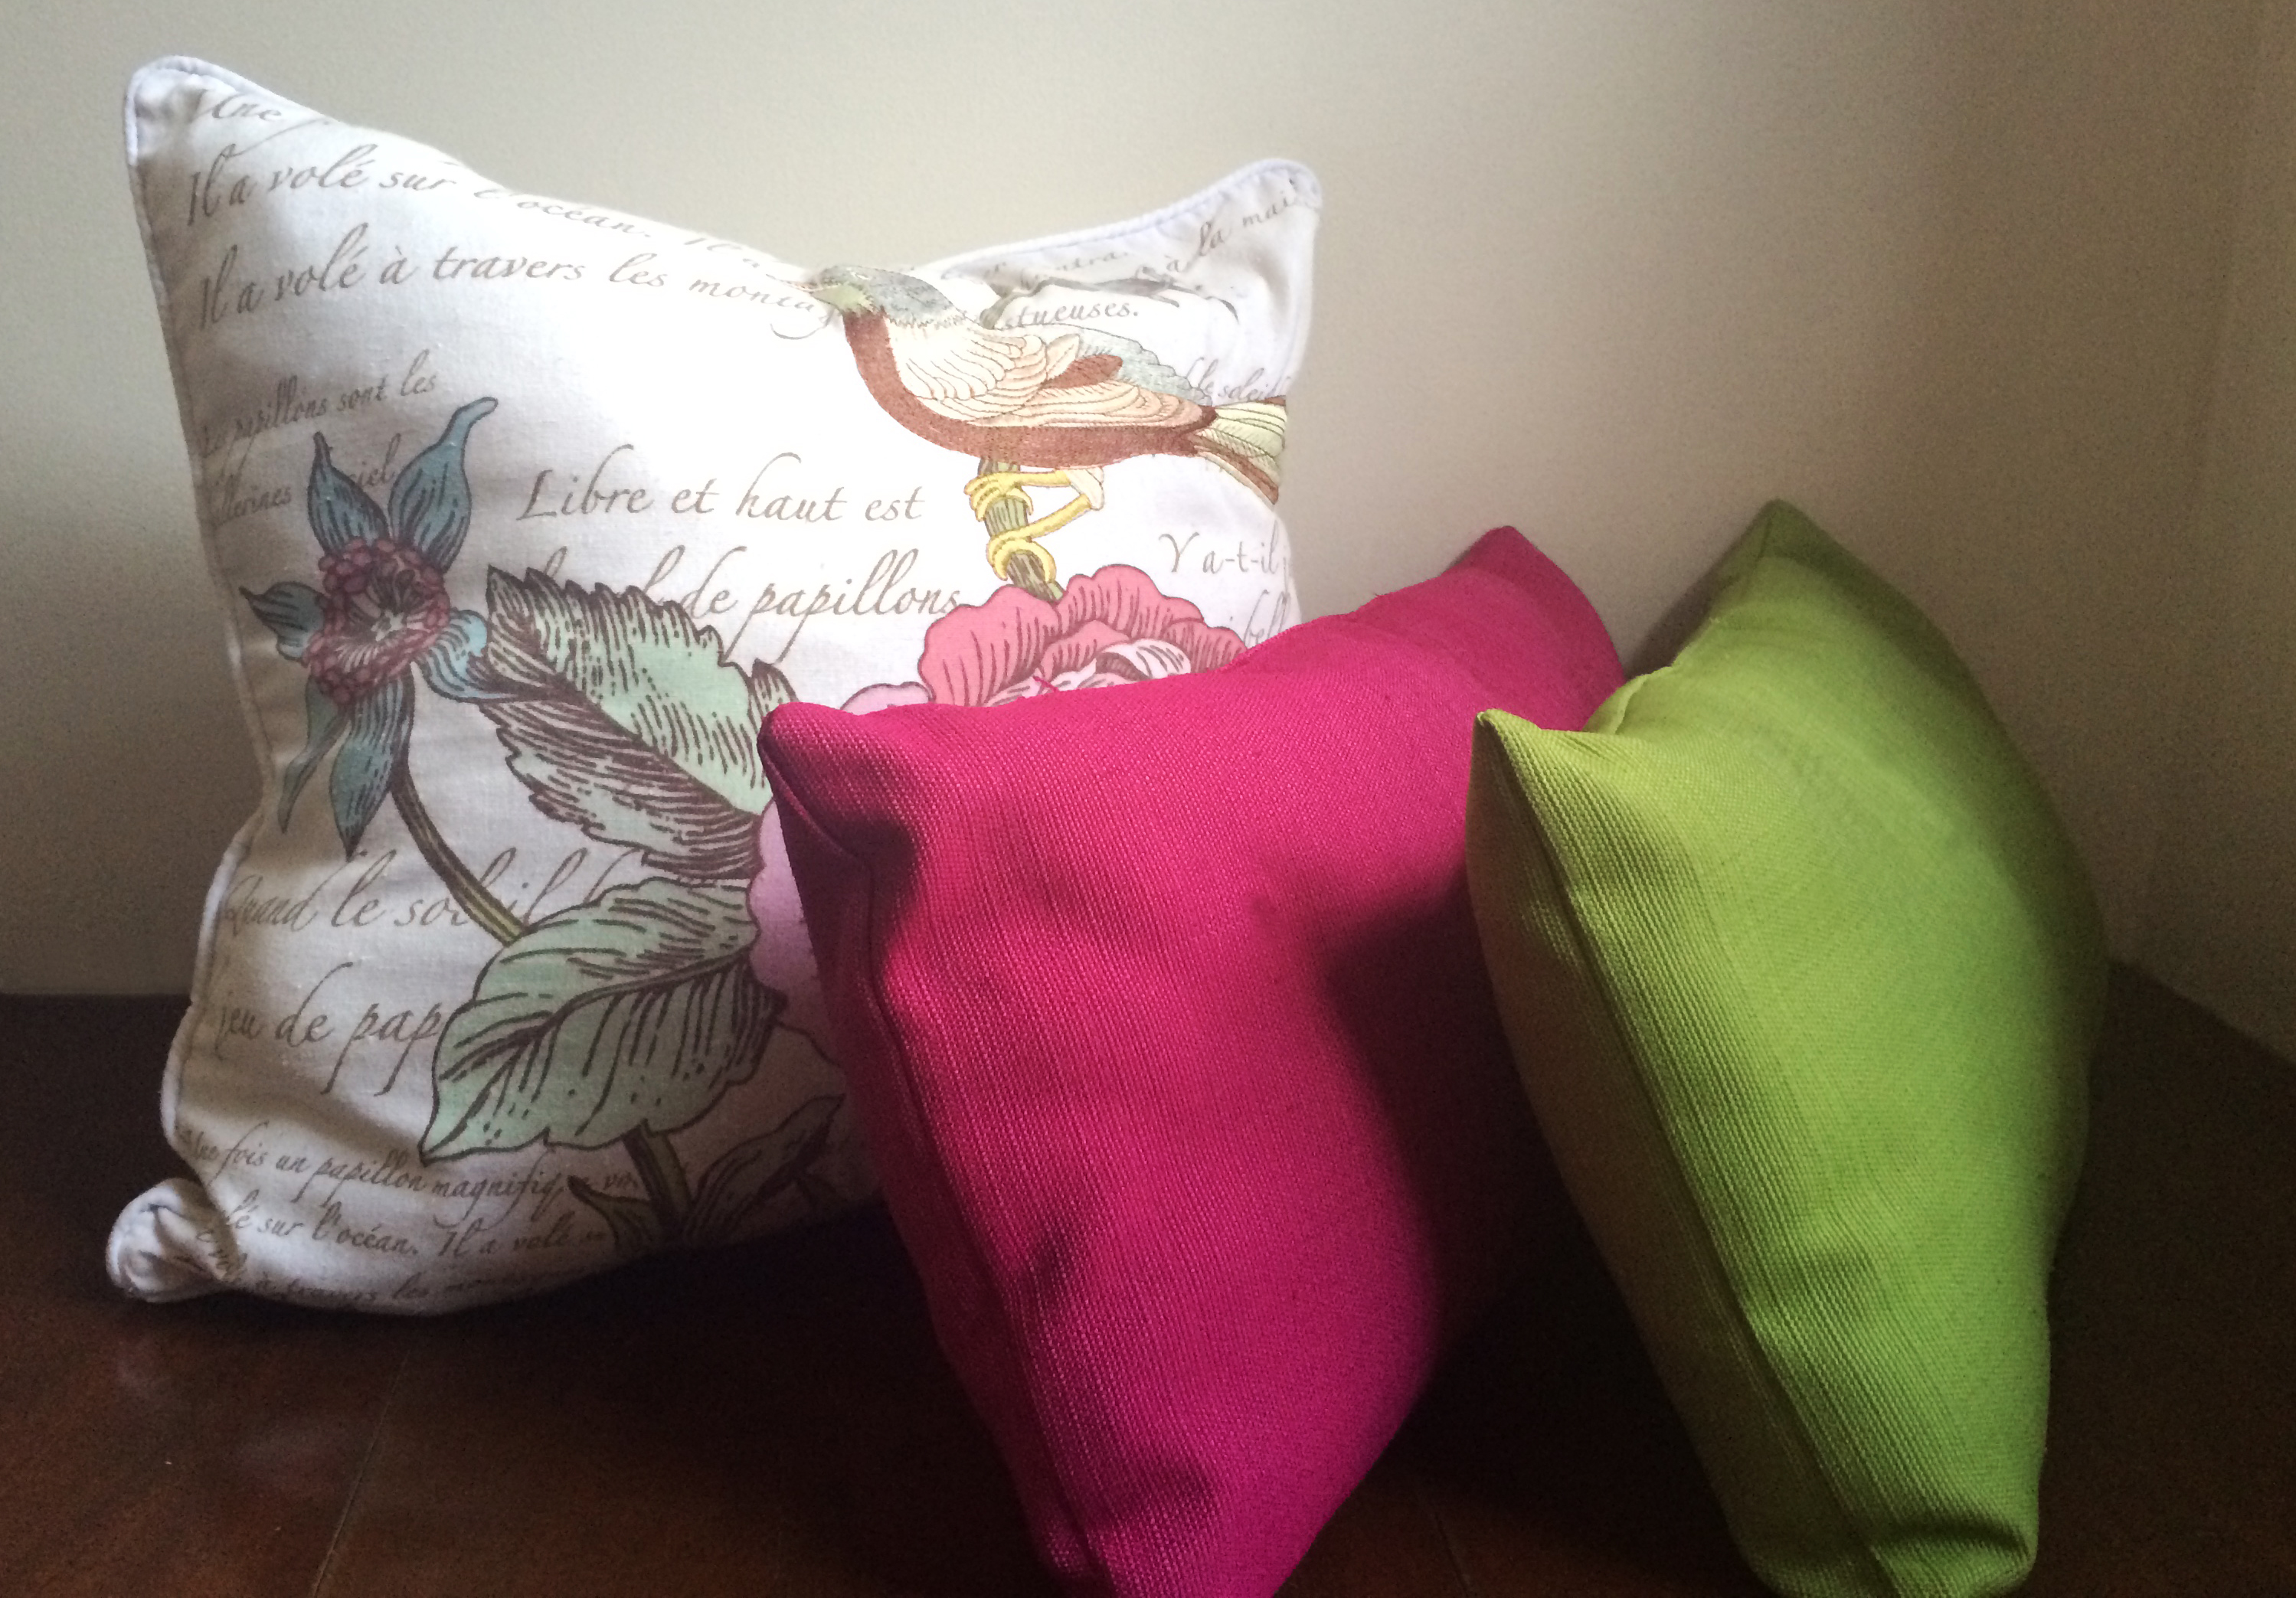 Pillows are a must-have in reading nooks.